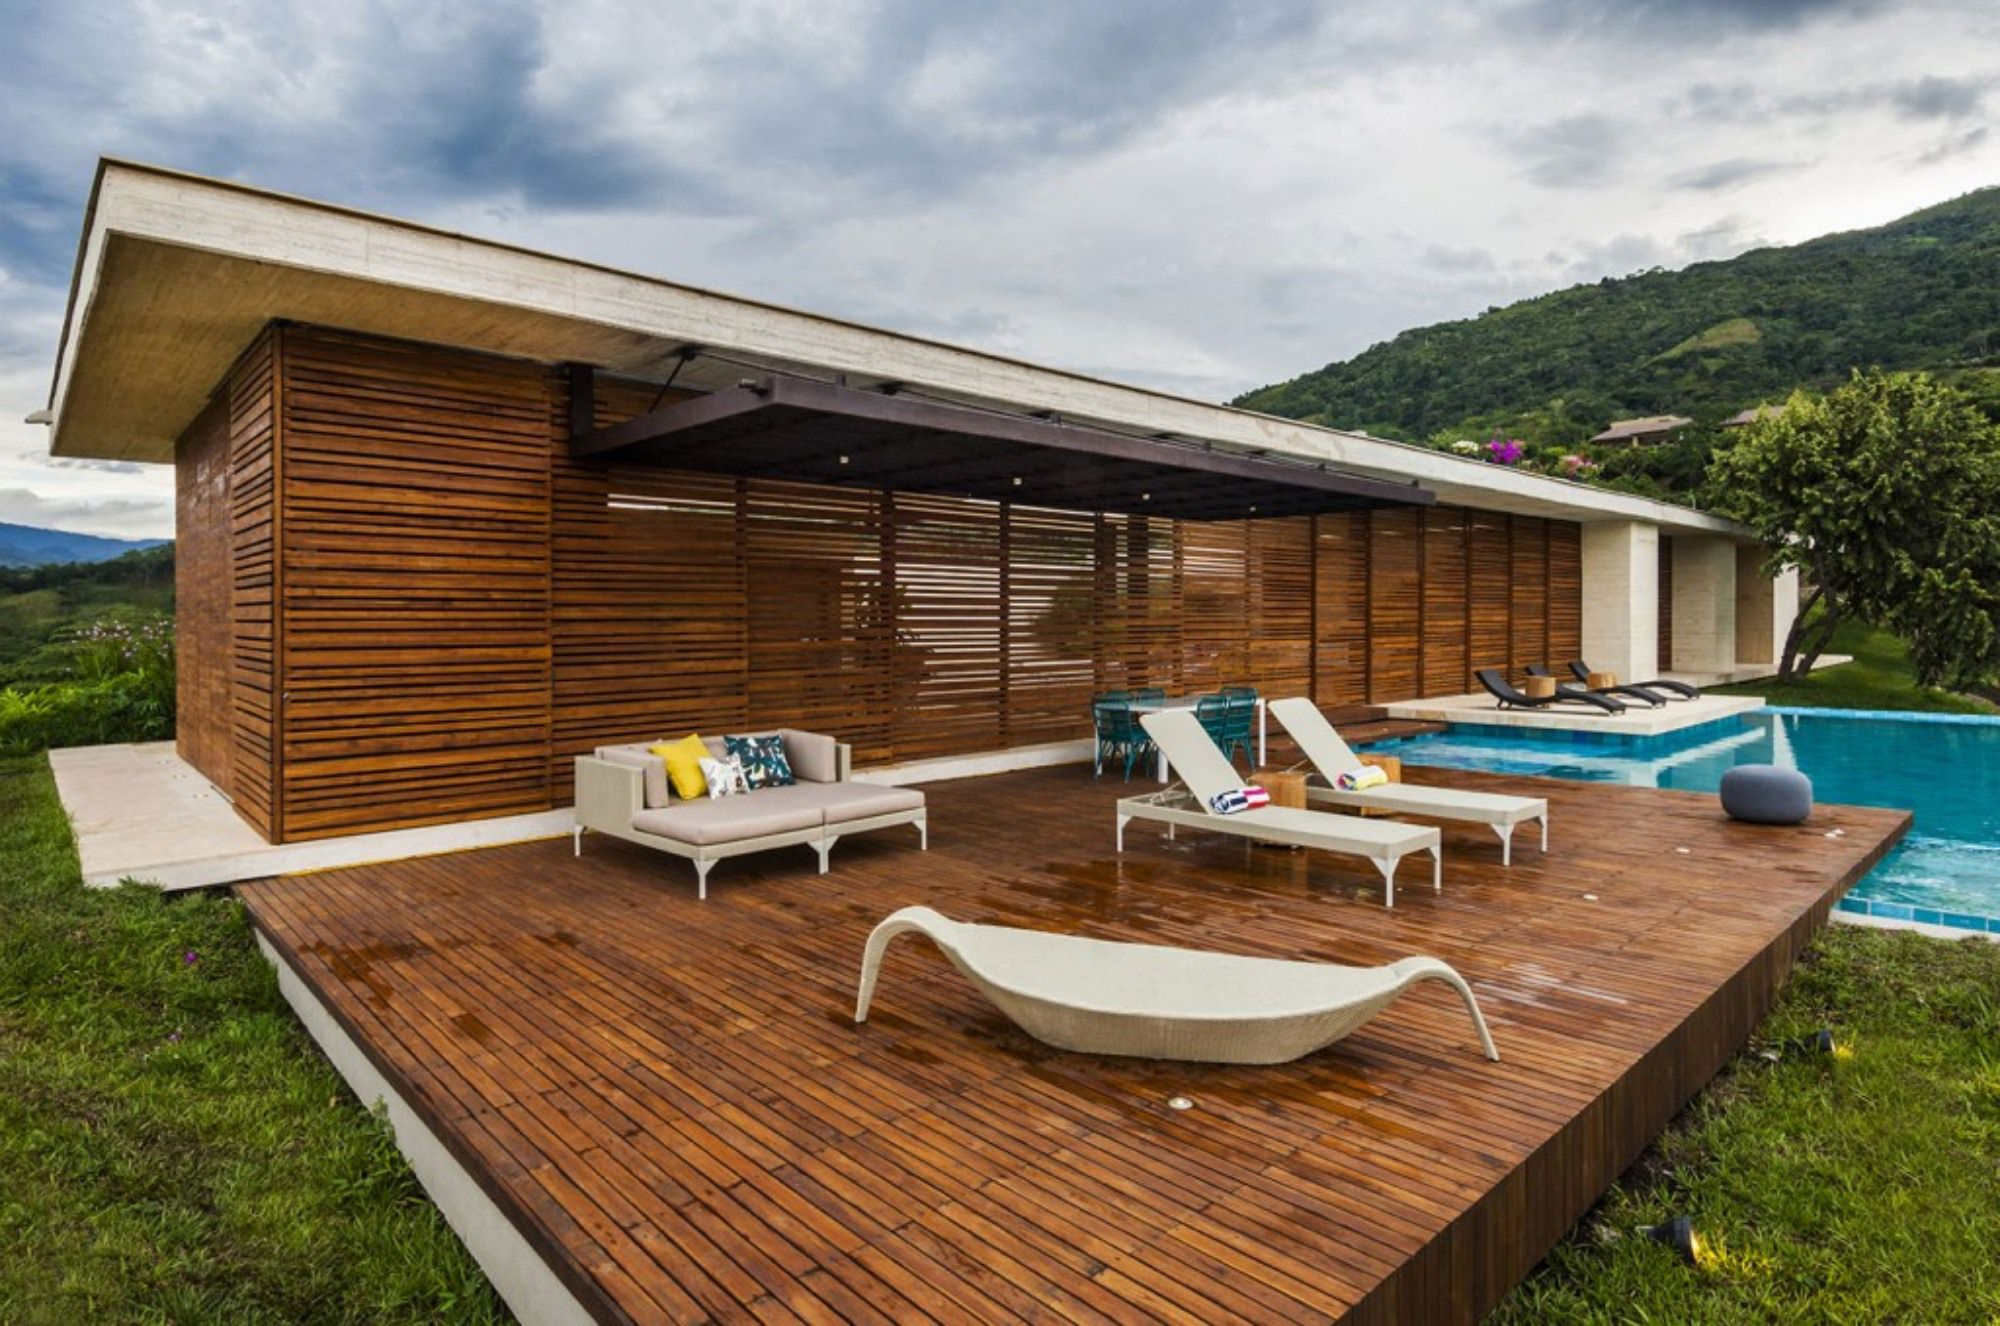 Contemporary Deck Design Idea in Simple Rectangular Shape with Chaises and Sofa